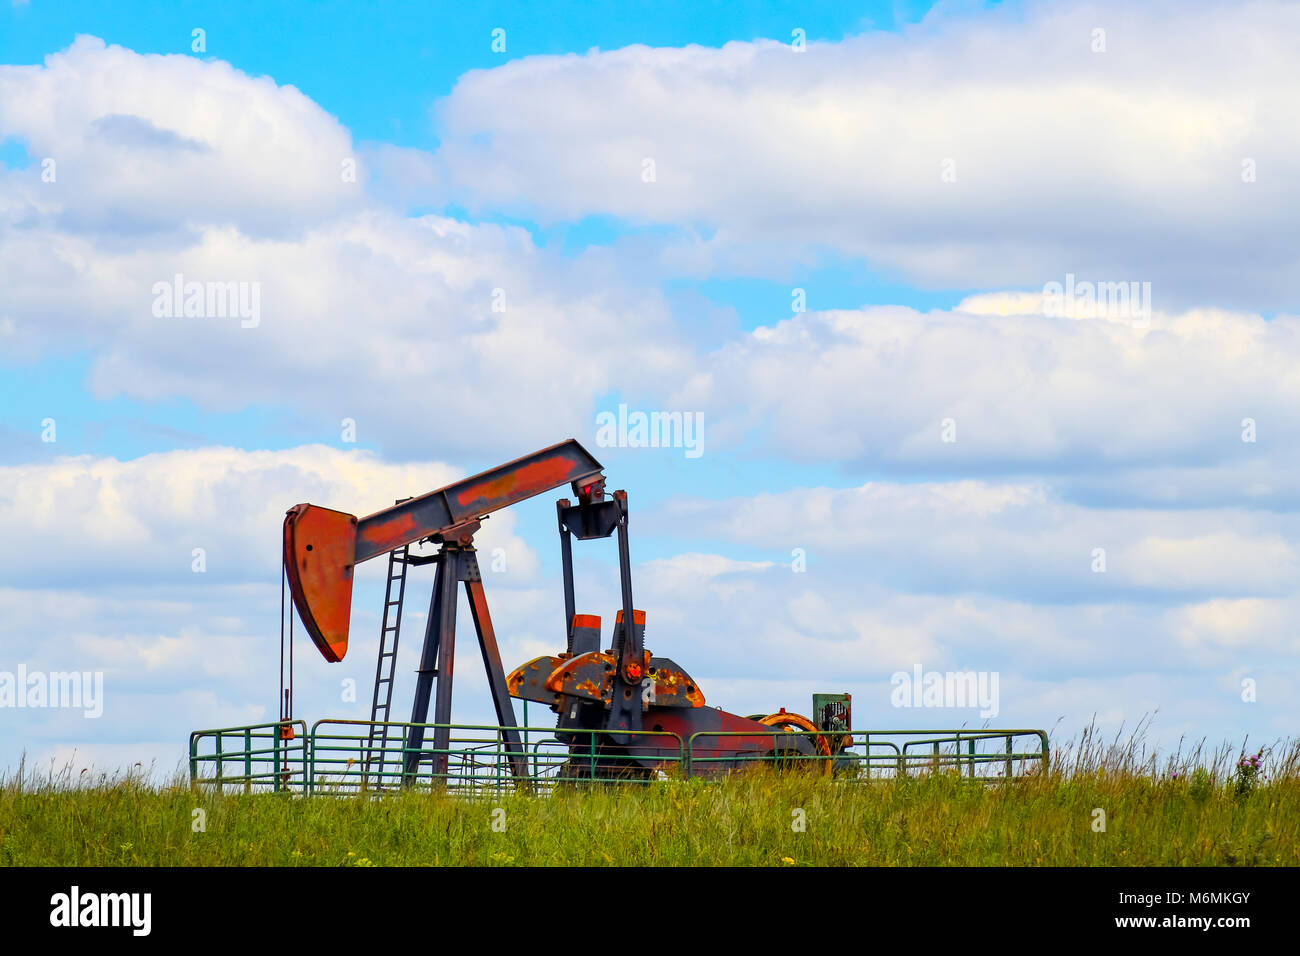 Colorful pump jack on oil well - low horizon on prairie with green grass and wild flowers - big blue cloudy sky - room for text Stock Photo